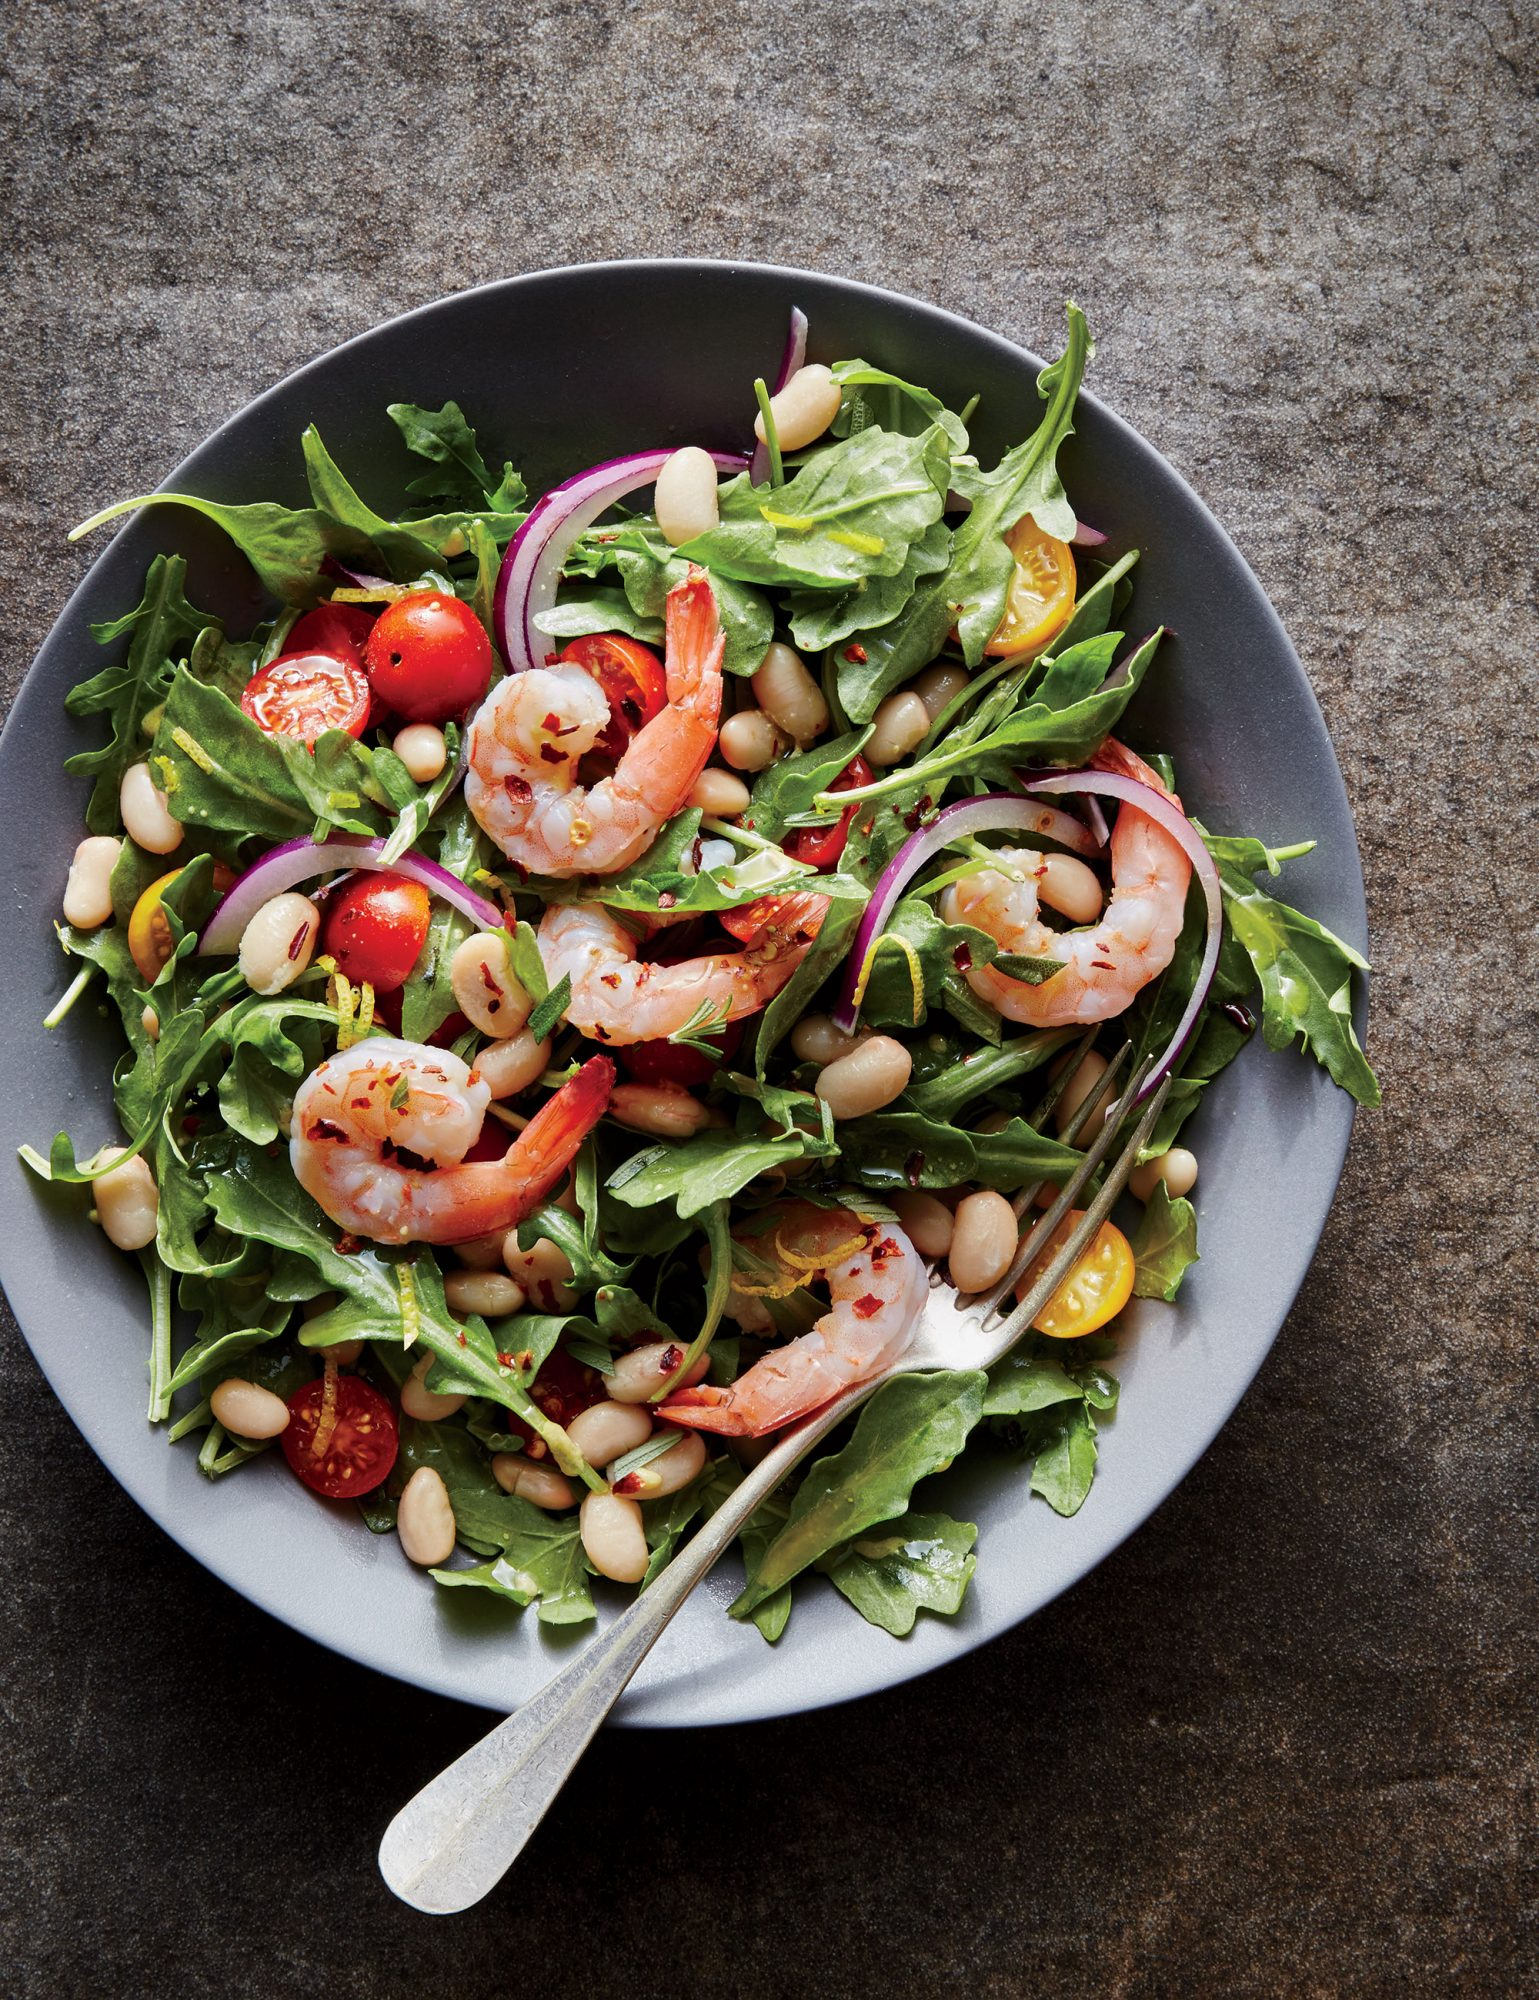 ck- Tuscan White Bean Salad with Shrimp